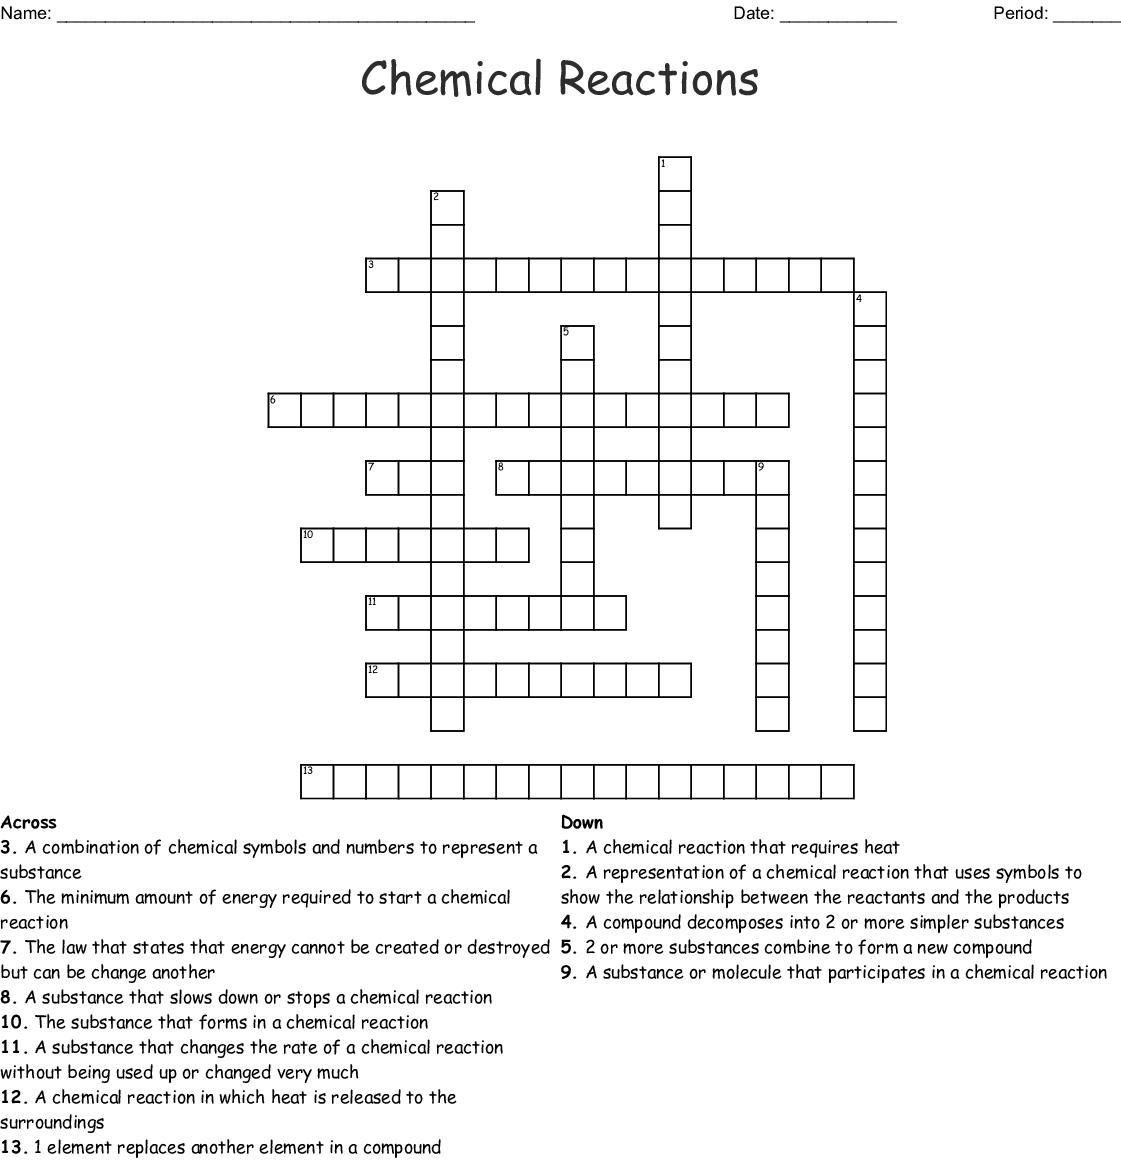 Chemical Reaction Word Search